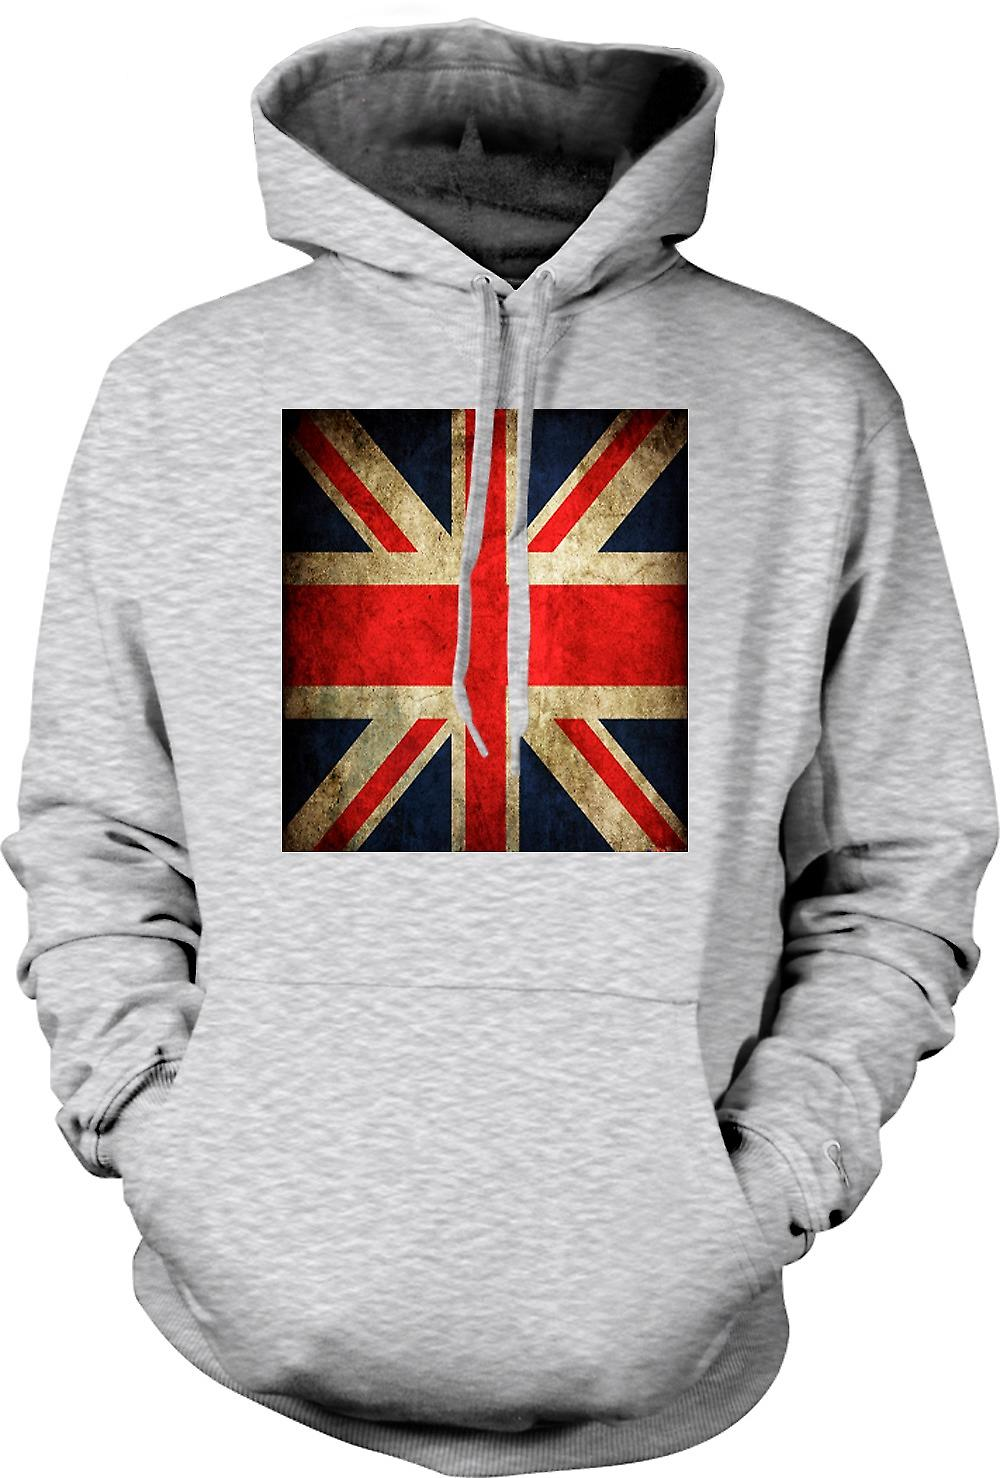 Mens Hoodie - Great Britiain Grunge Flag